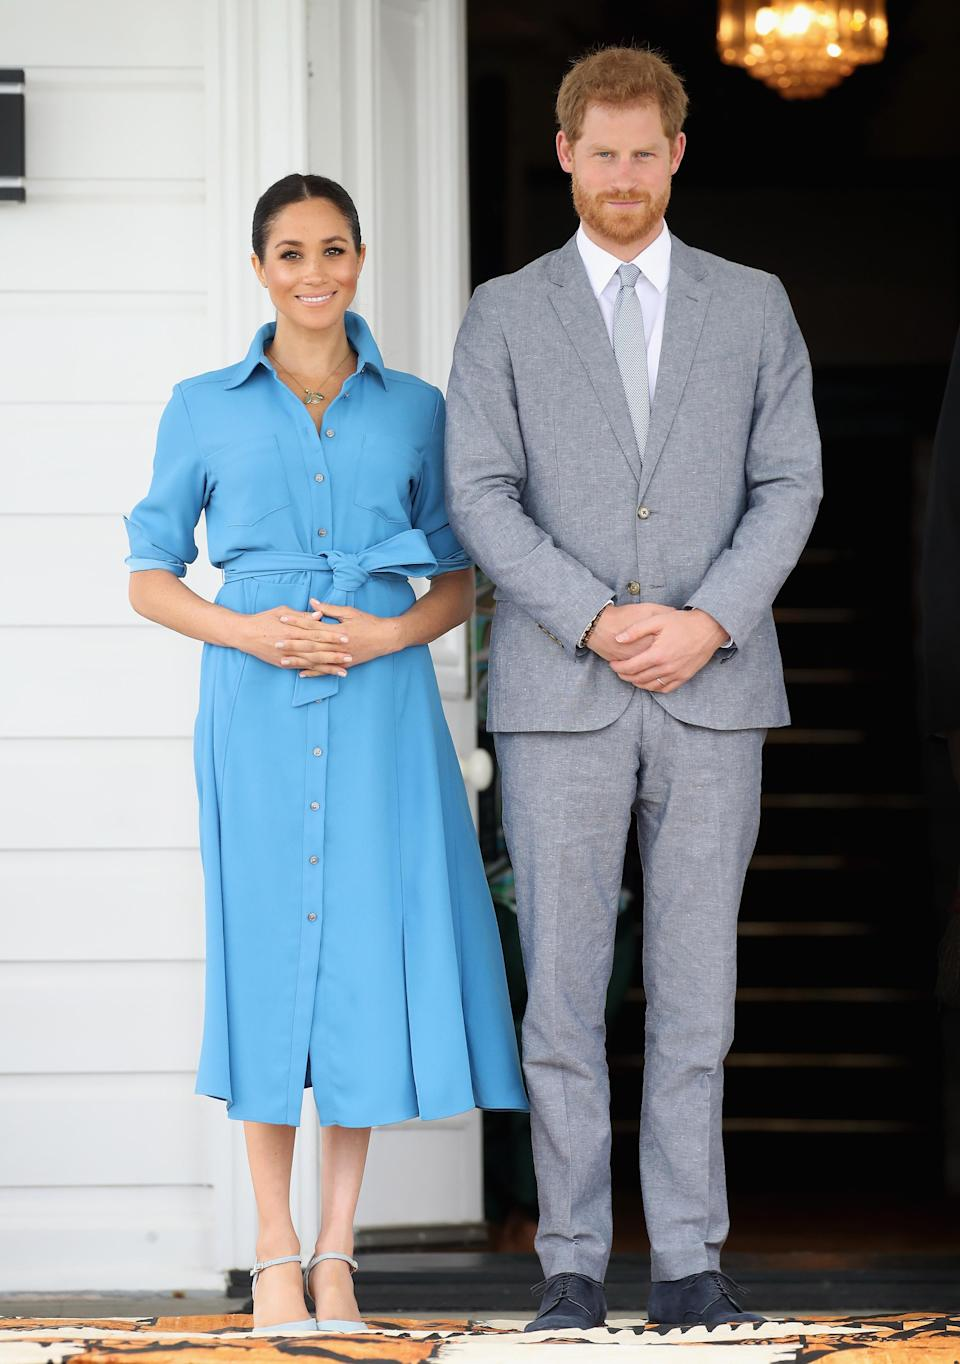 <p>On October 26, the Duchess of Sussex wore a $595 (approx £465) Veronica Beard shirt dress for a trip to Tupou College and Toloa rainforest. She teamed the look with Aquazurra heels – which promptly sold out online. <em>[Photo: Getty]</em> </p>